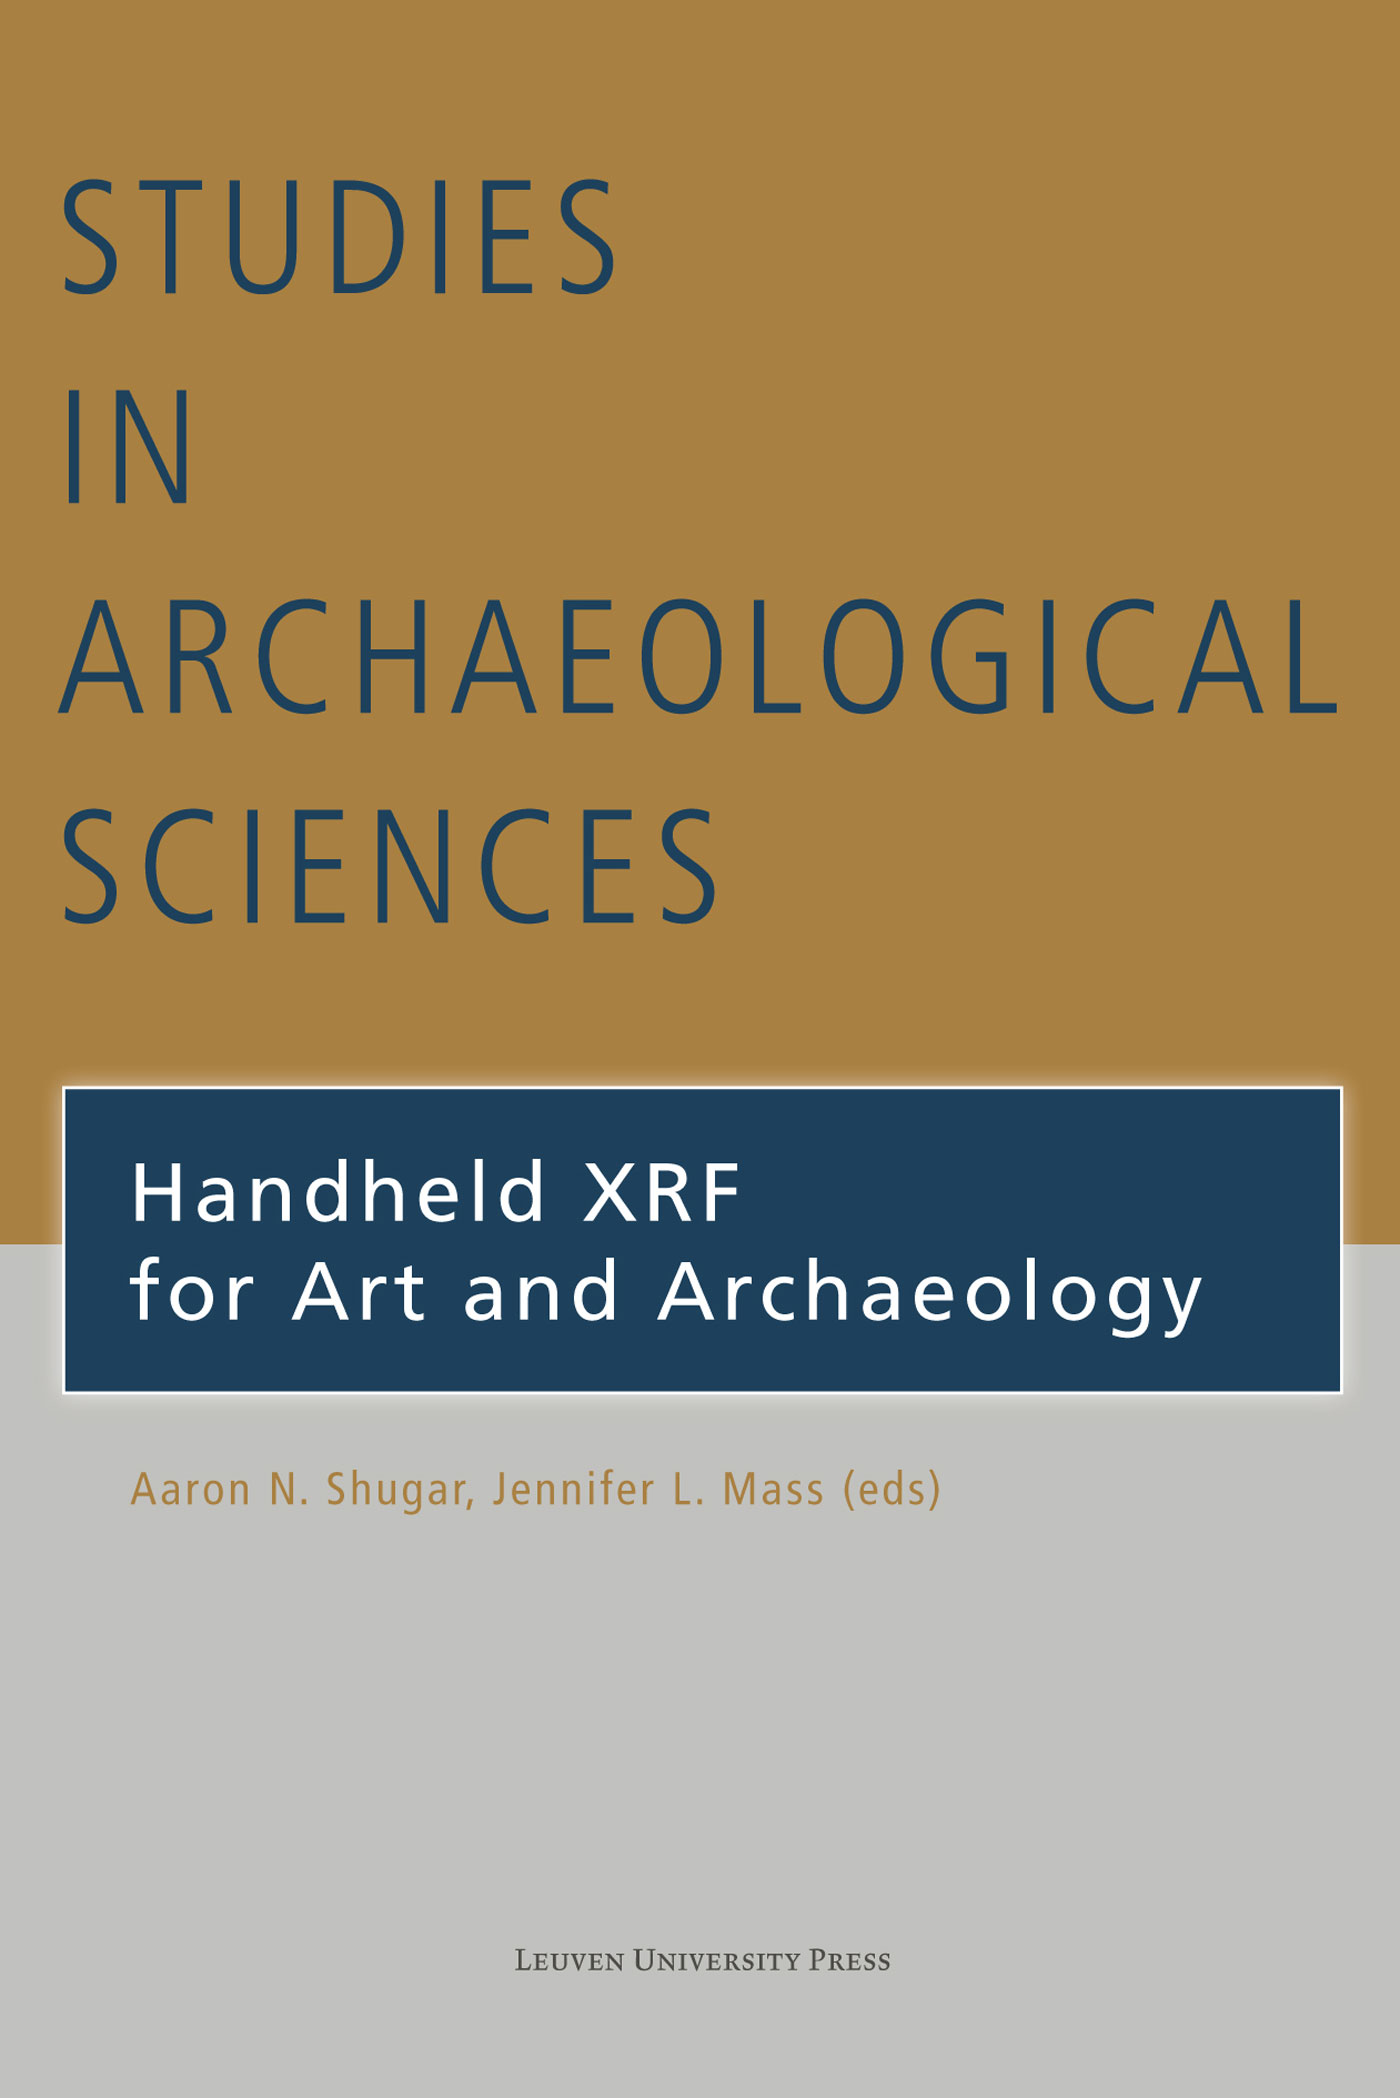 Handheld XRF for art and archaeology